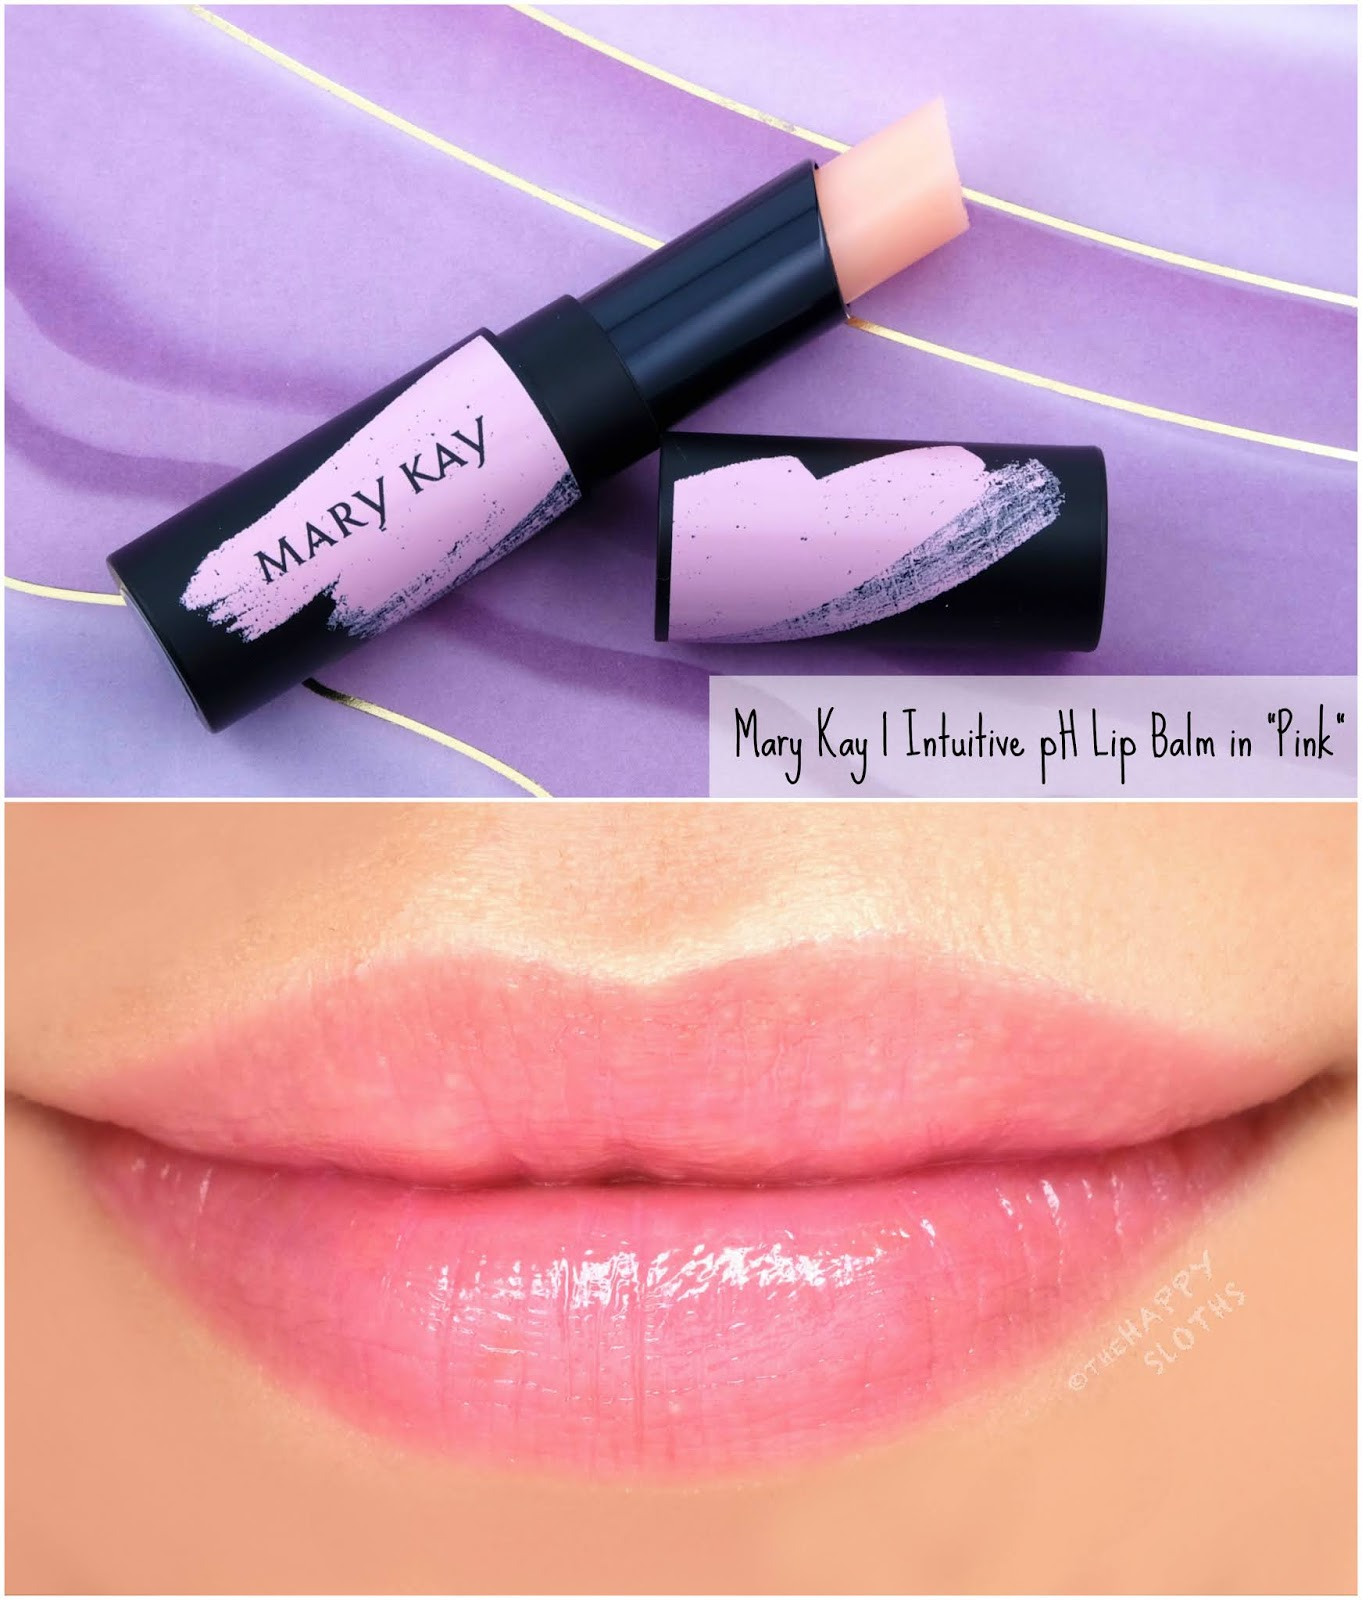 "Mary Kay | Intuitive pH Lip Balm ""Pink"": Review and Swatches"